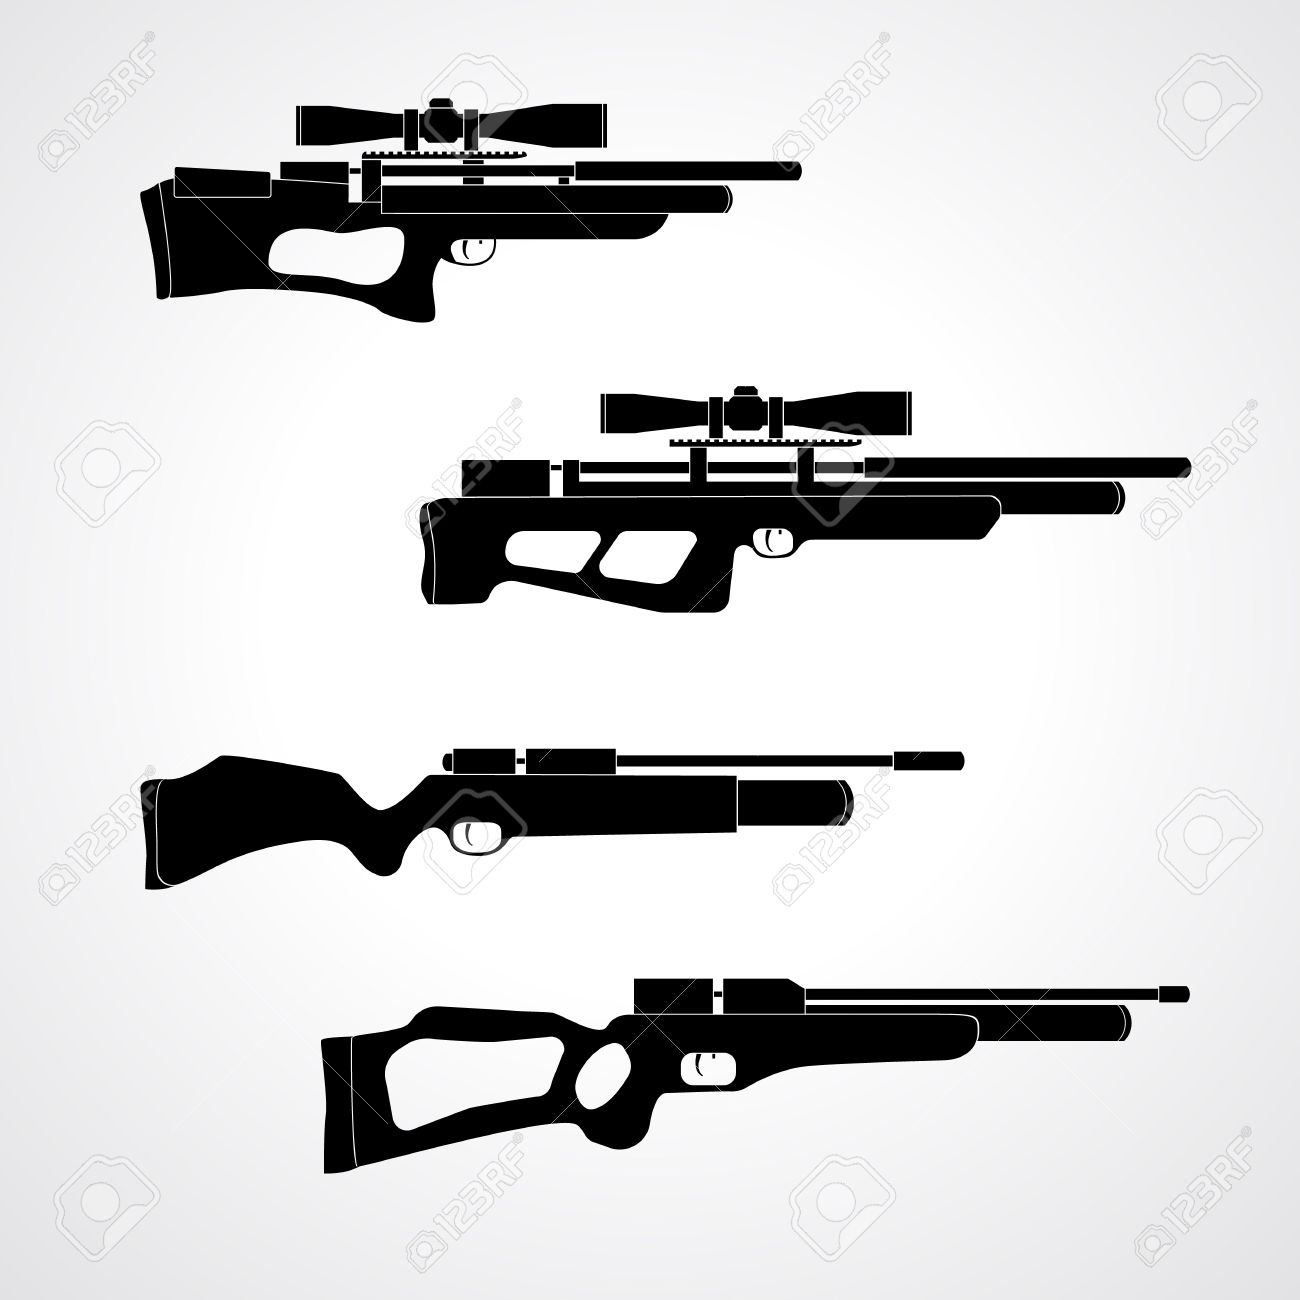 PCP Compressed Air Hunting Rifle. Airguns Carbine. Pneumatic.